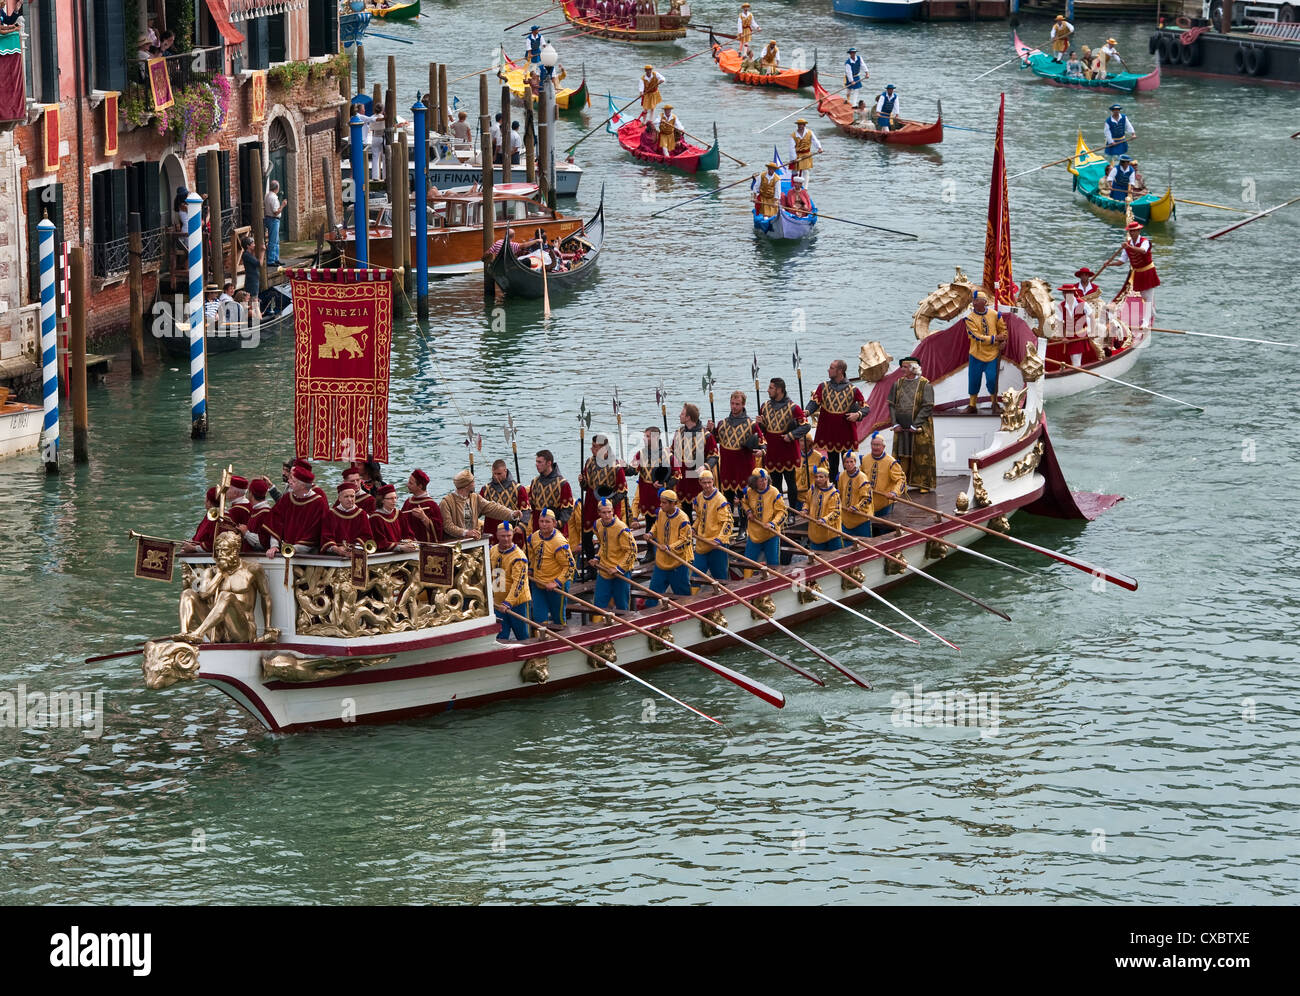 Venice, Italy. The Bucintoro leads the procession of historic boats during the annual  Regata Storico (Historic - Stock Image